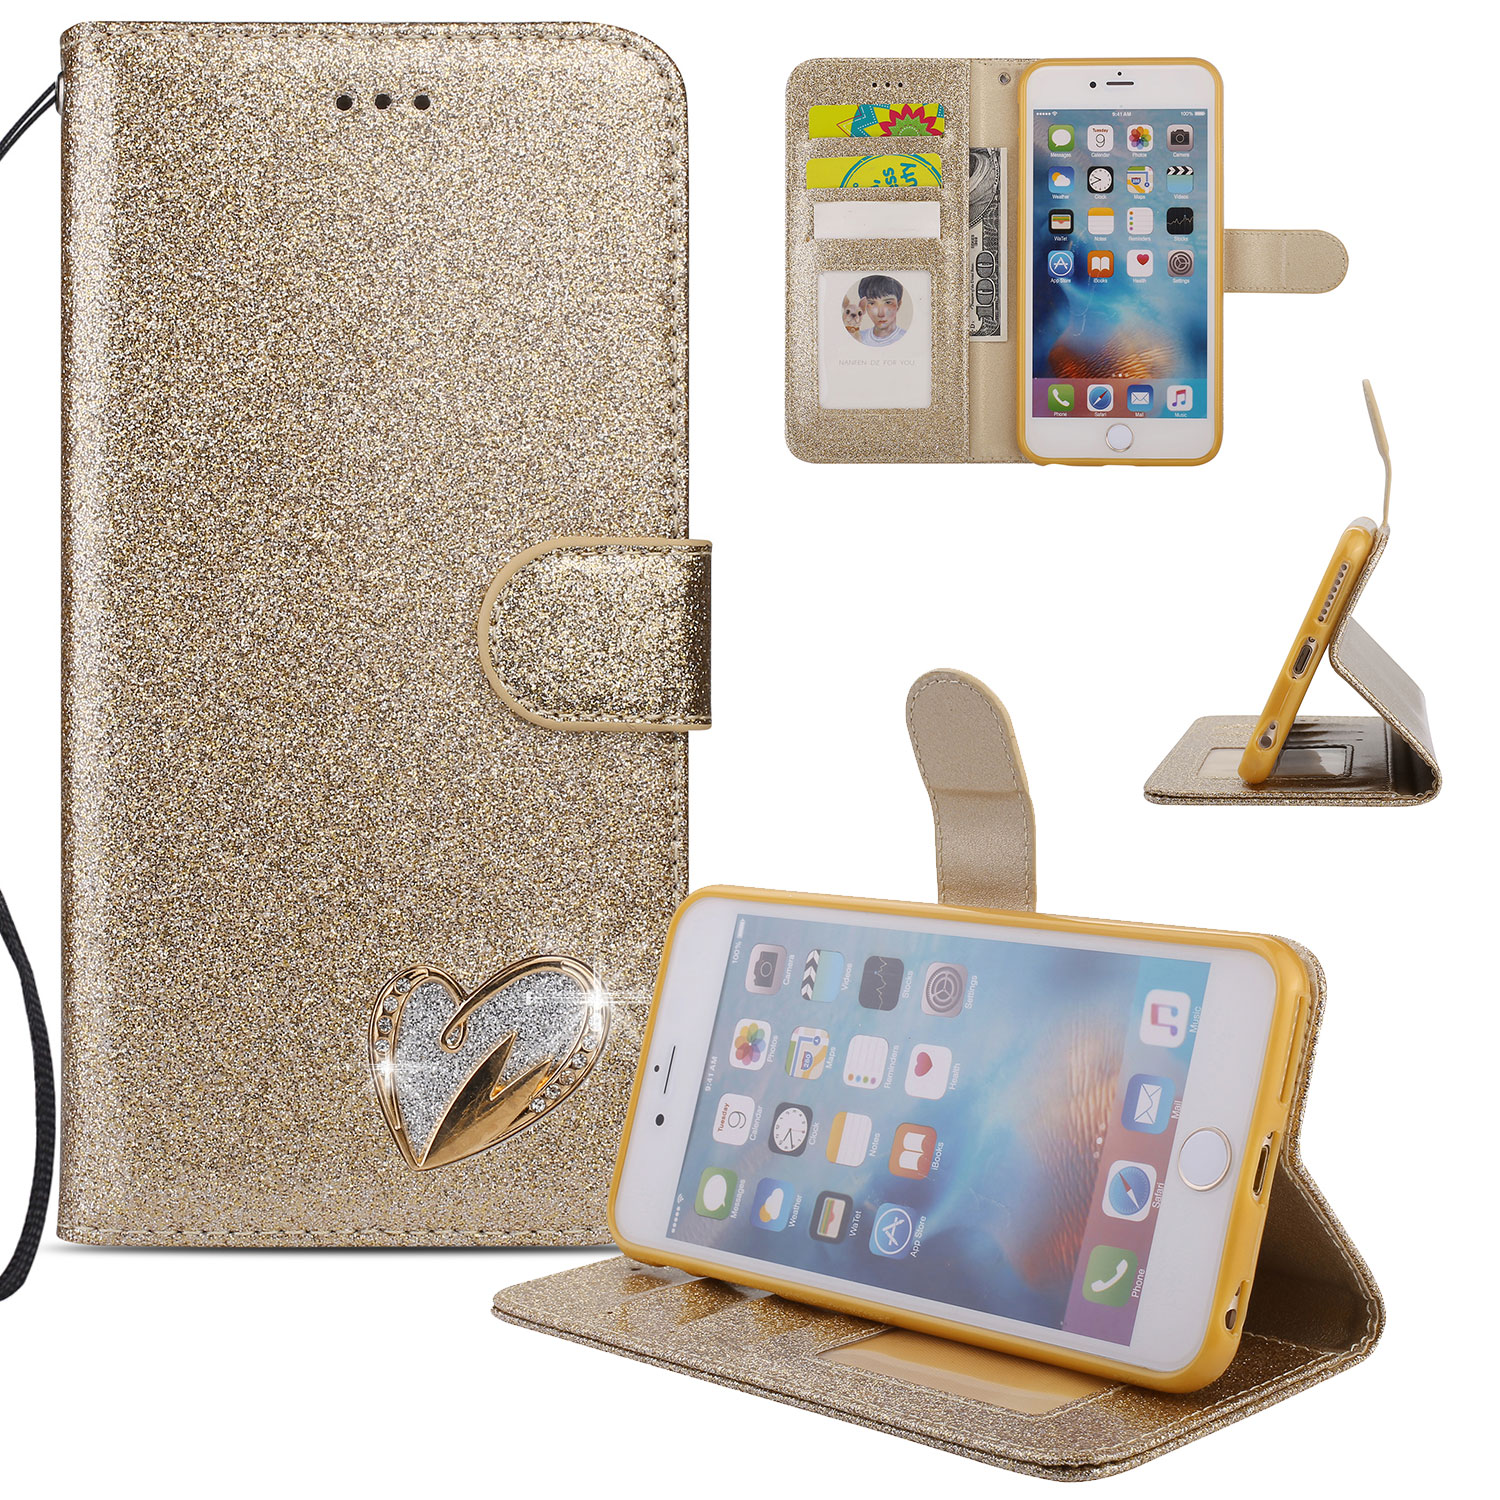 iPhone 6S Plus Case Wallet, iPhone 6 Plus Case, Allytech Glitter Folio Kickstand with Wristlet Lanyard Shiny Sparkle Luxury Bling Card Slots Slim Cover for Apple iPhone 6 Plus/ 6S Plus (Gold)